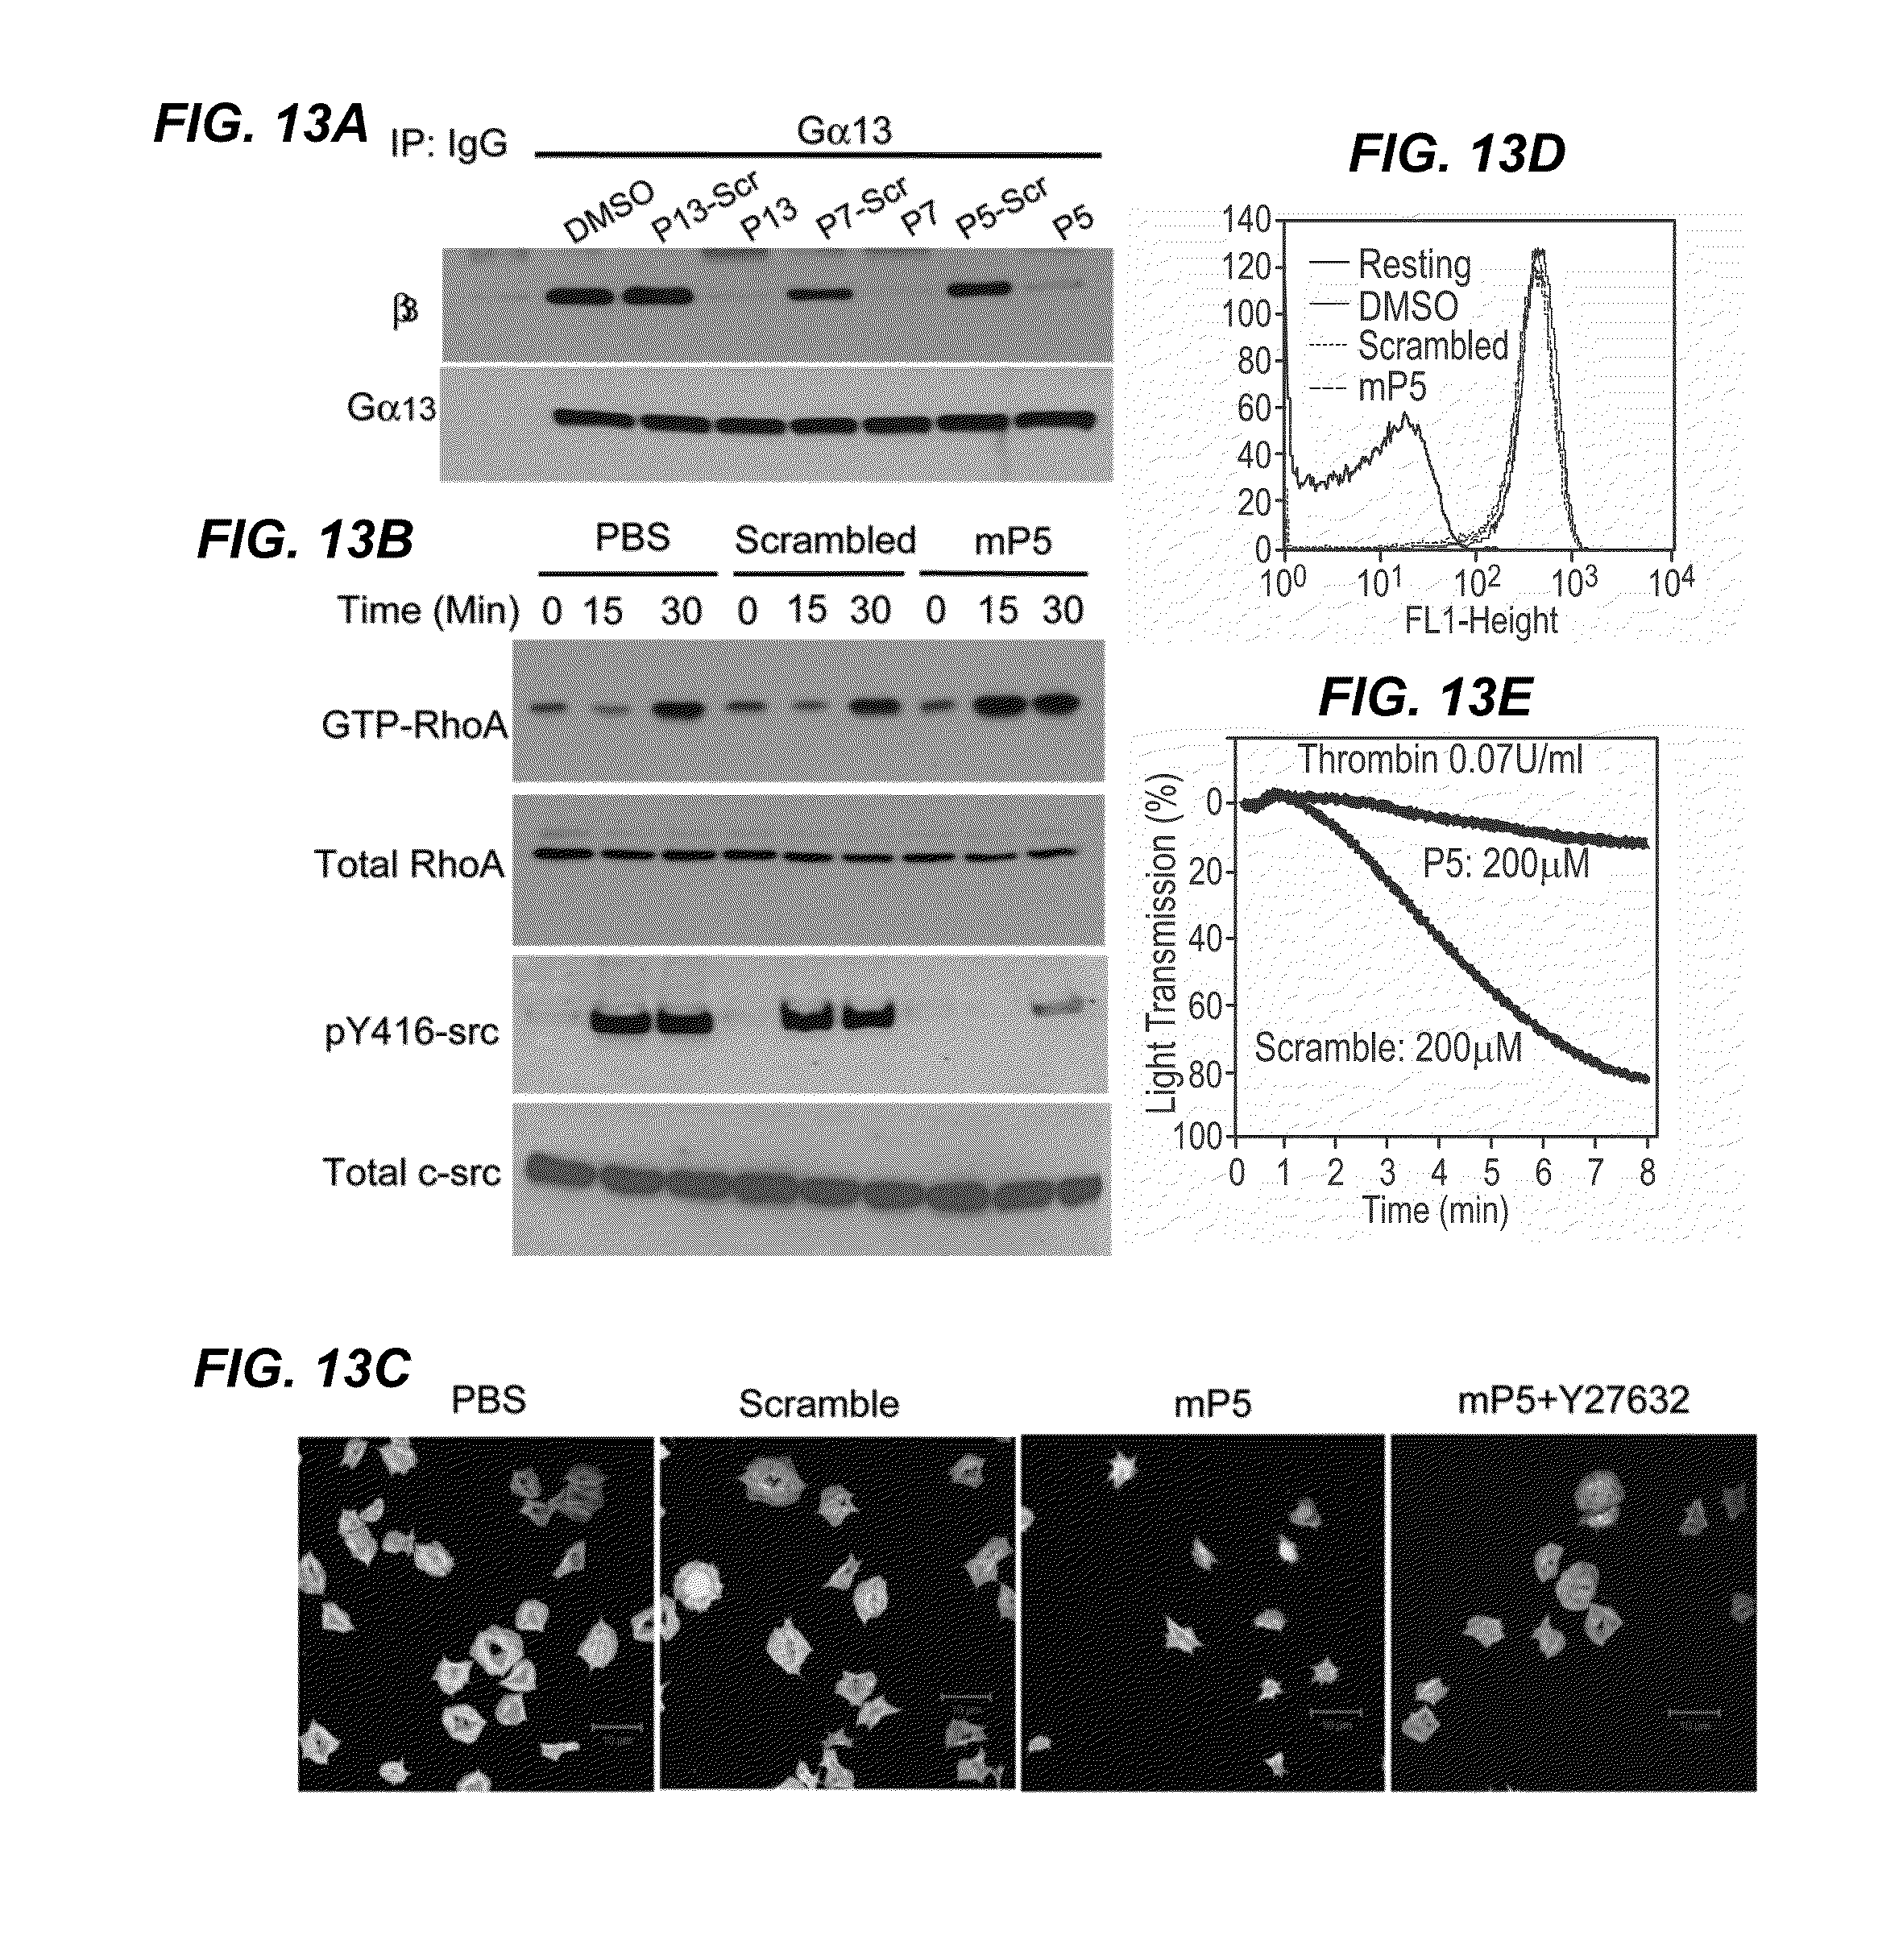 US20130072433A1 - Inhibitors of beta integrin-g protein